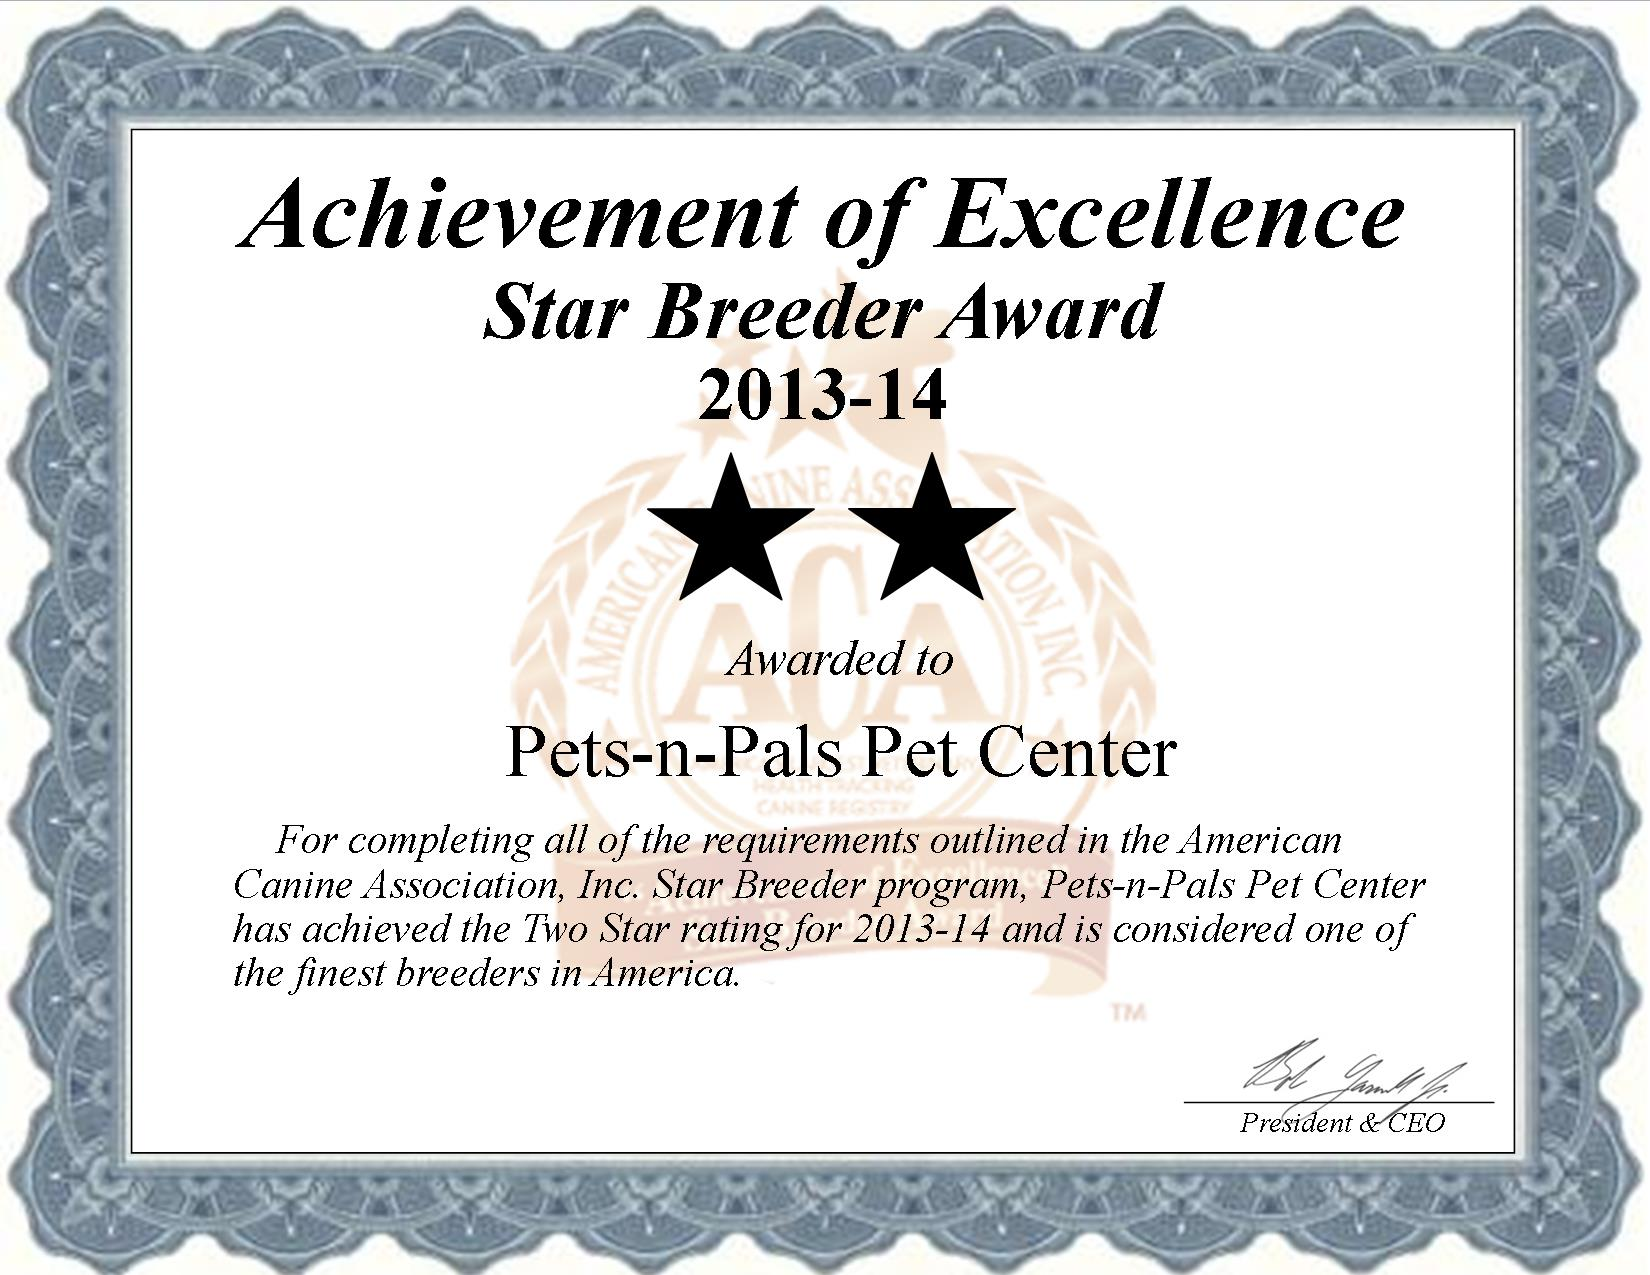 Paws-n-Pals Pet Center, Pet Center Kennel, Pet Center do breeder, star breeder, aca, star breeder, 2 star, Washington, Indiana, IN, dog, puppy, puppies, dog breeder, dog breeders, Indiana breeder, Paws-n-Pals Pet Center dog breeder